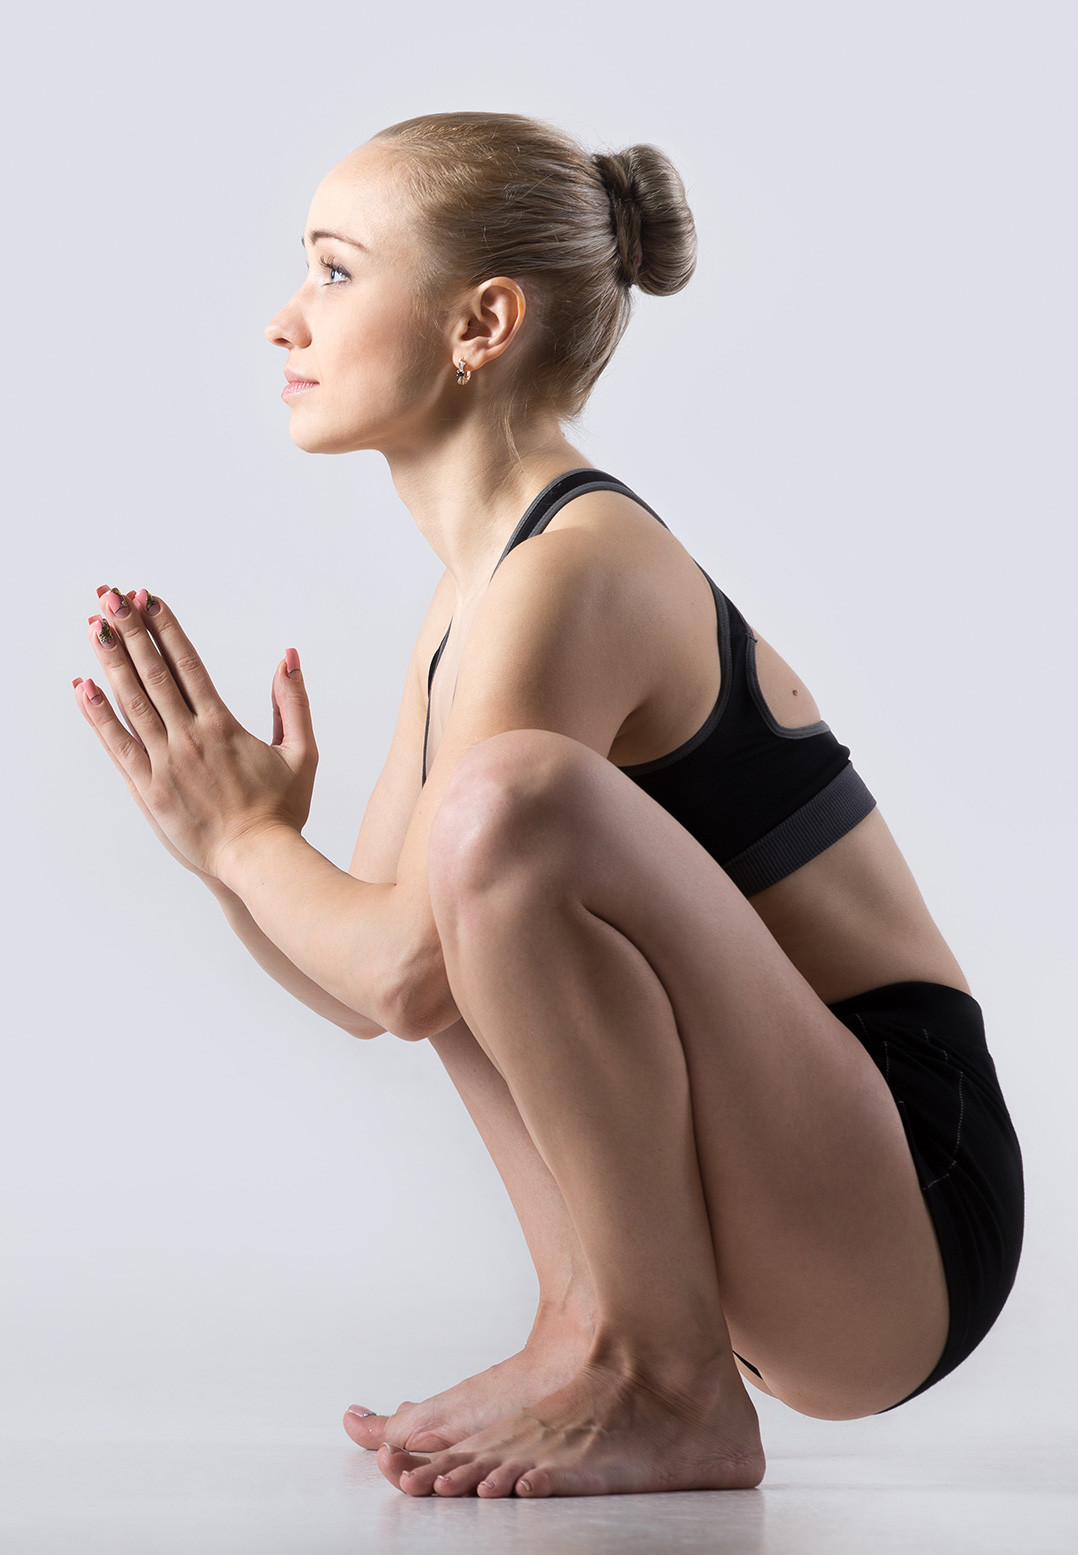 Interesting Facts About The Natural Squatting Position